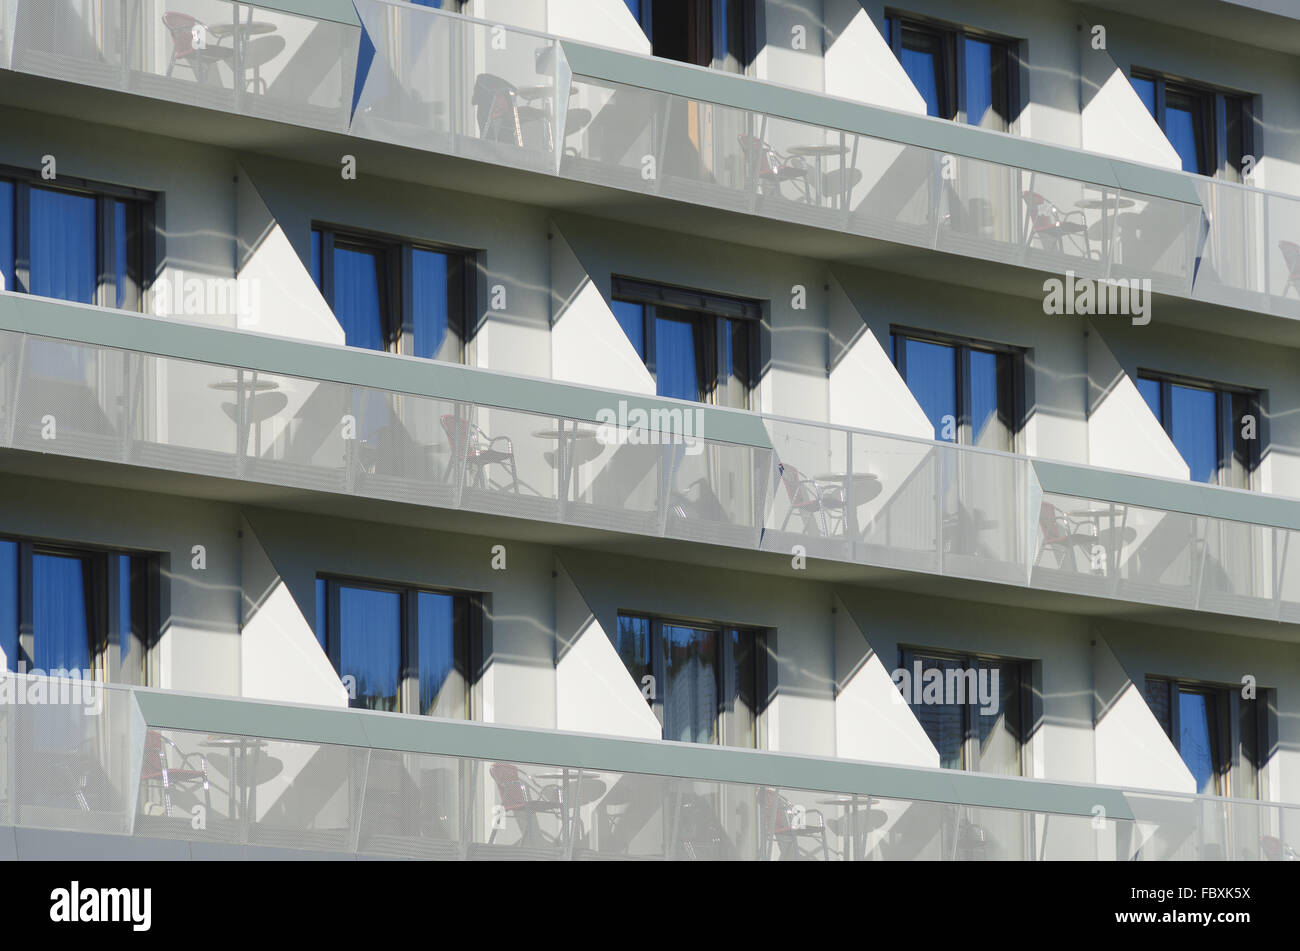 Front Of A Modern Hotel With Balconies Stock Photo 93398870 Alamy